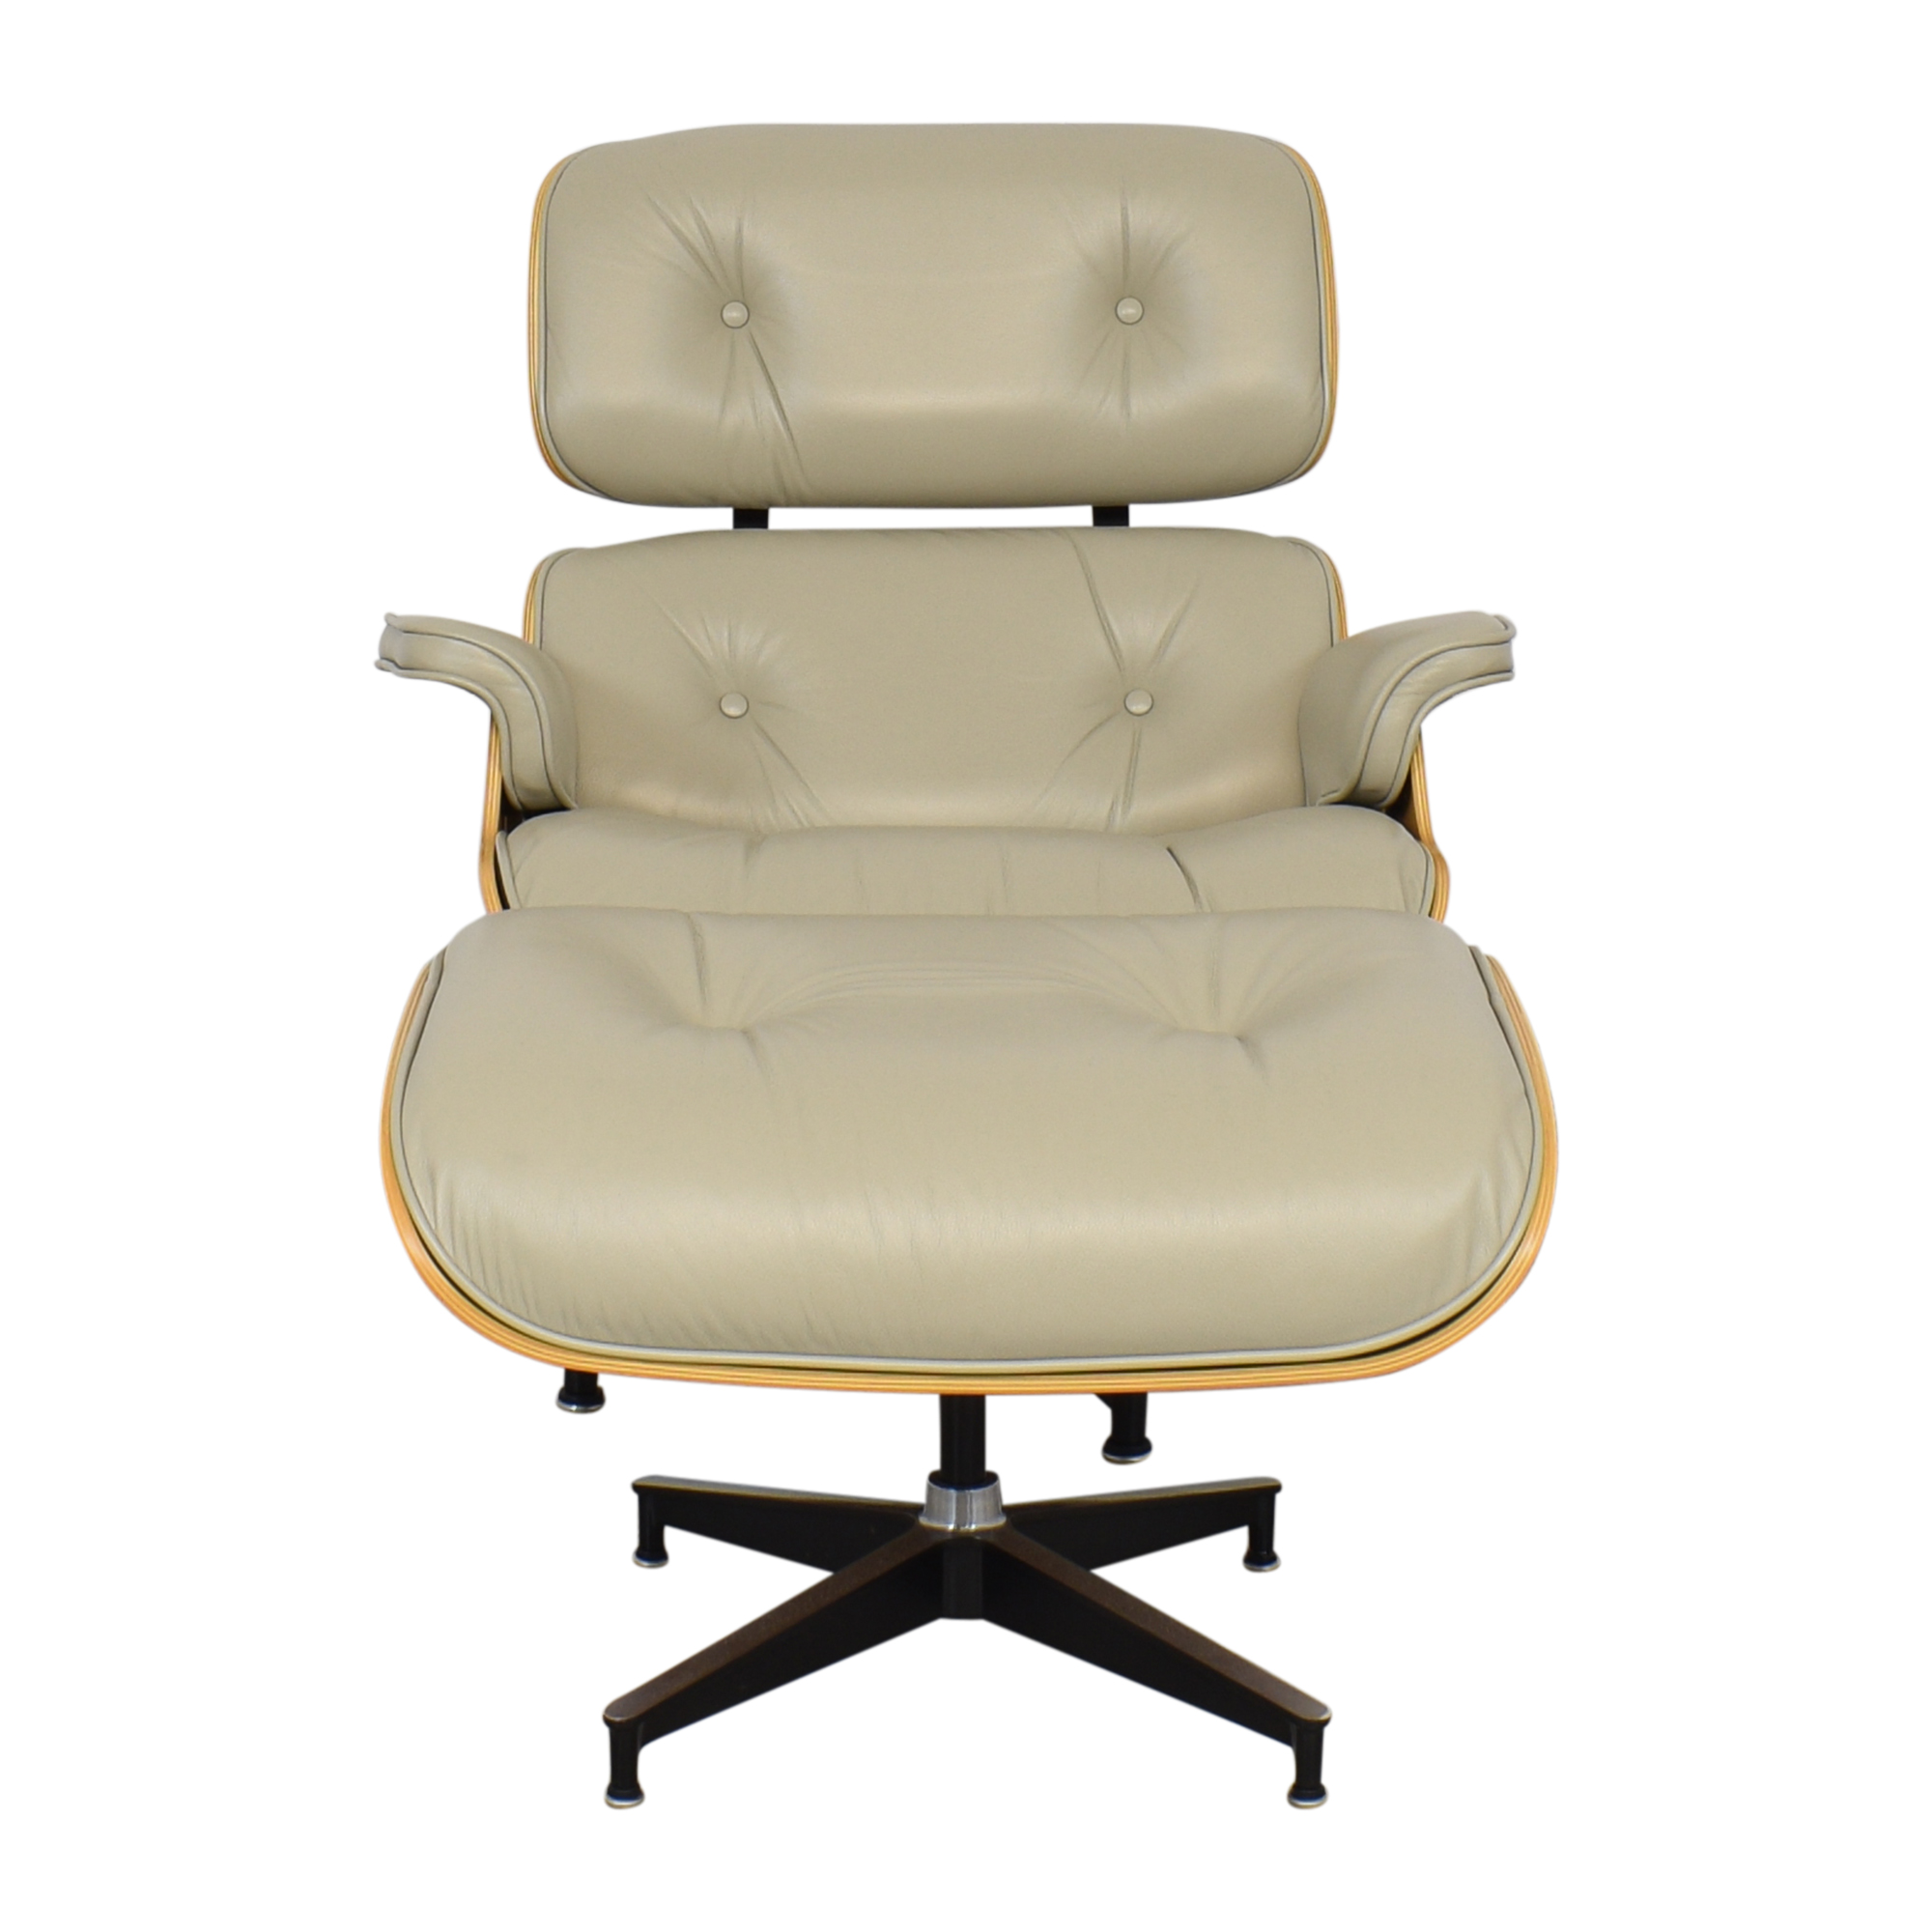 shop Herman Miller Herman Miller Eames Lounge Chair and Ottoman online